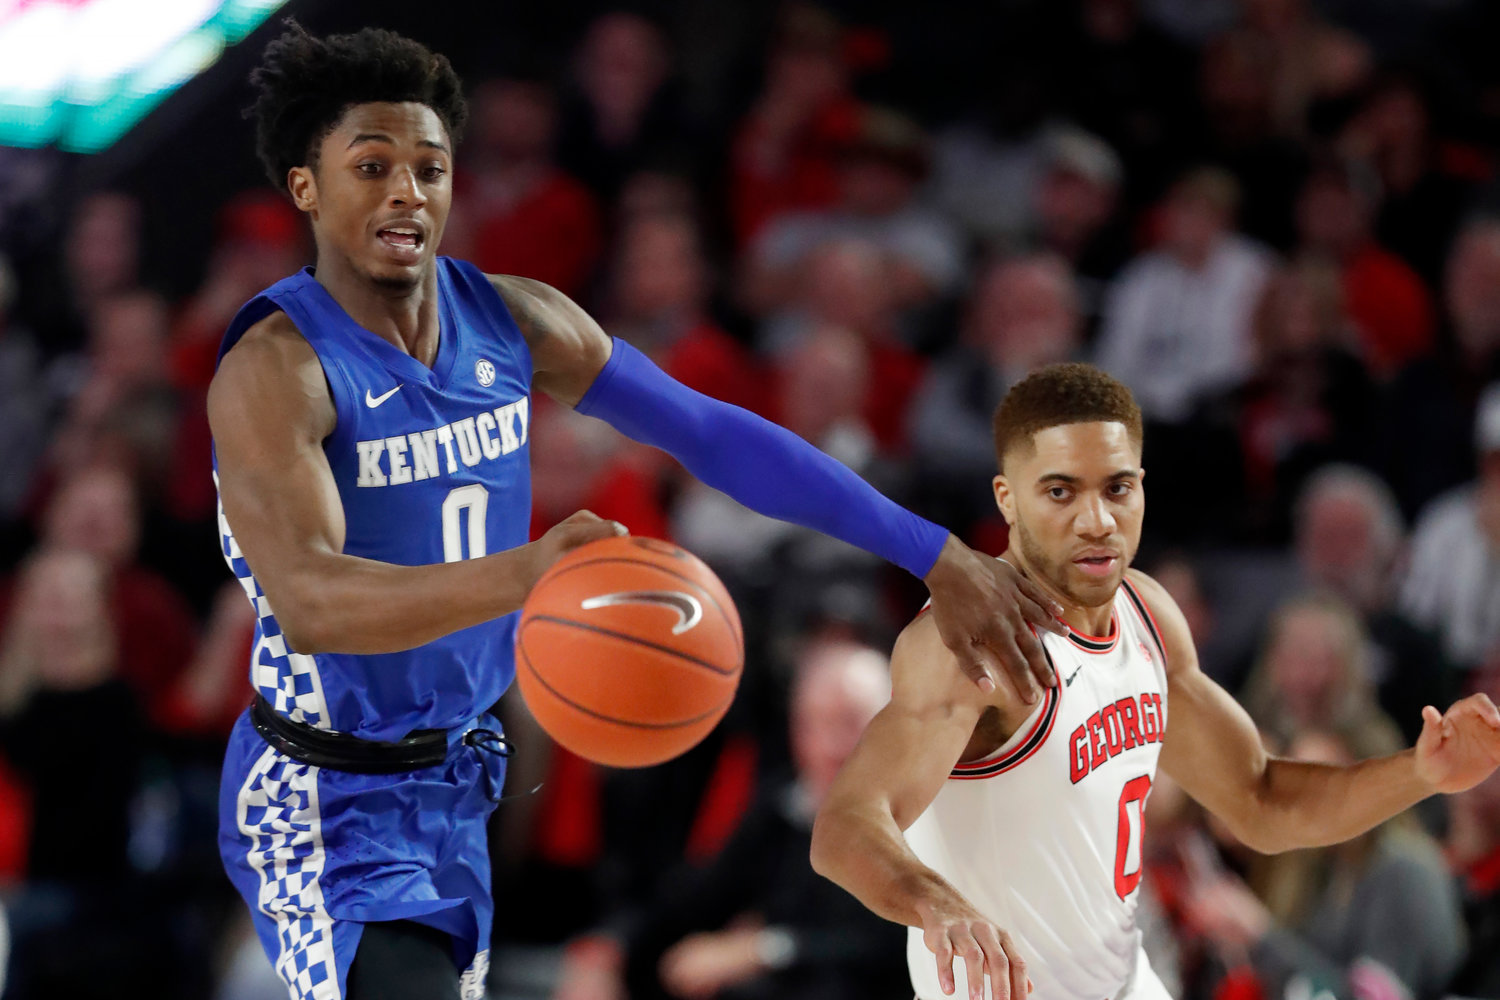 Kentucky guard Ashton Hagans and Georgia guard Donnell Gresham Jr. chase down a loose ball in the first half of a game Jan. 7 in Athens.